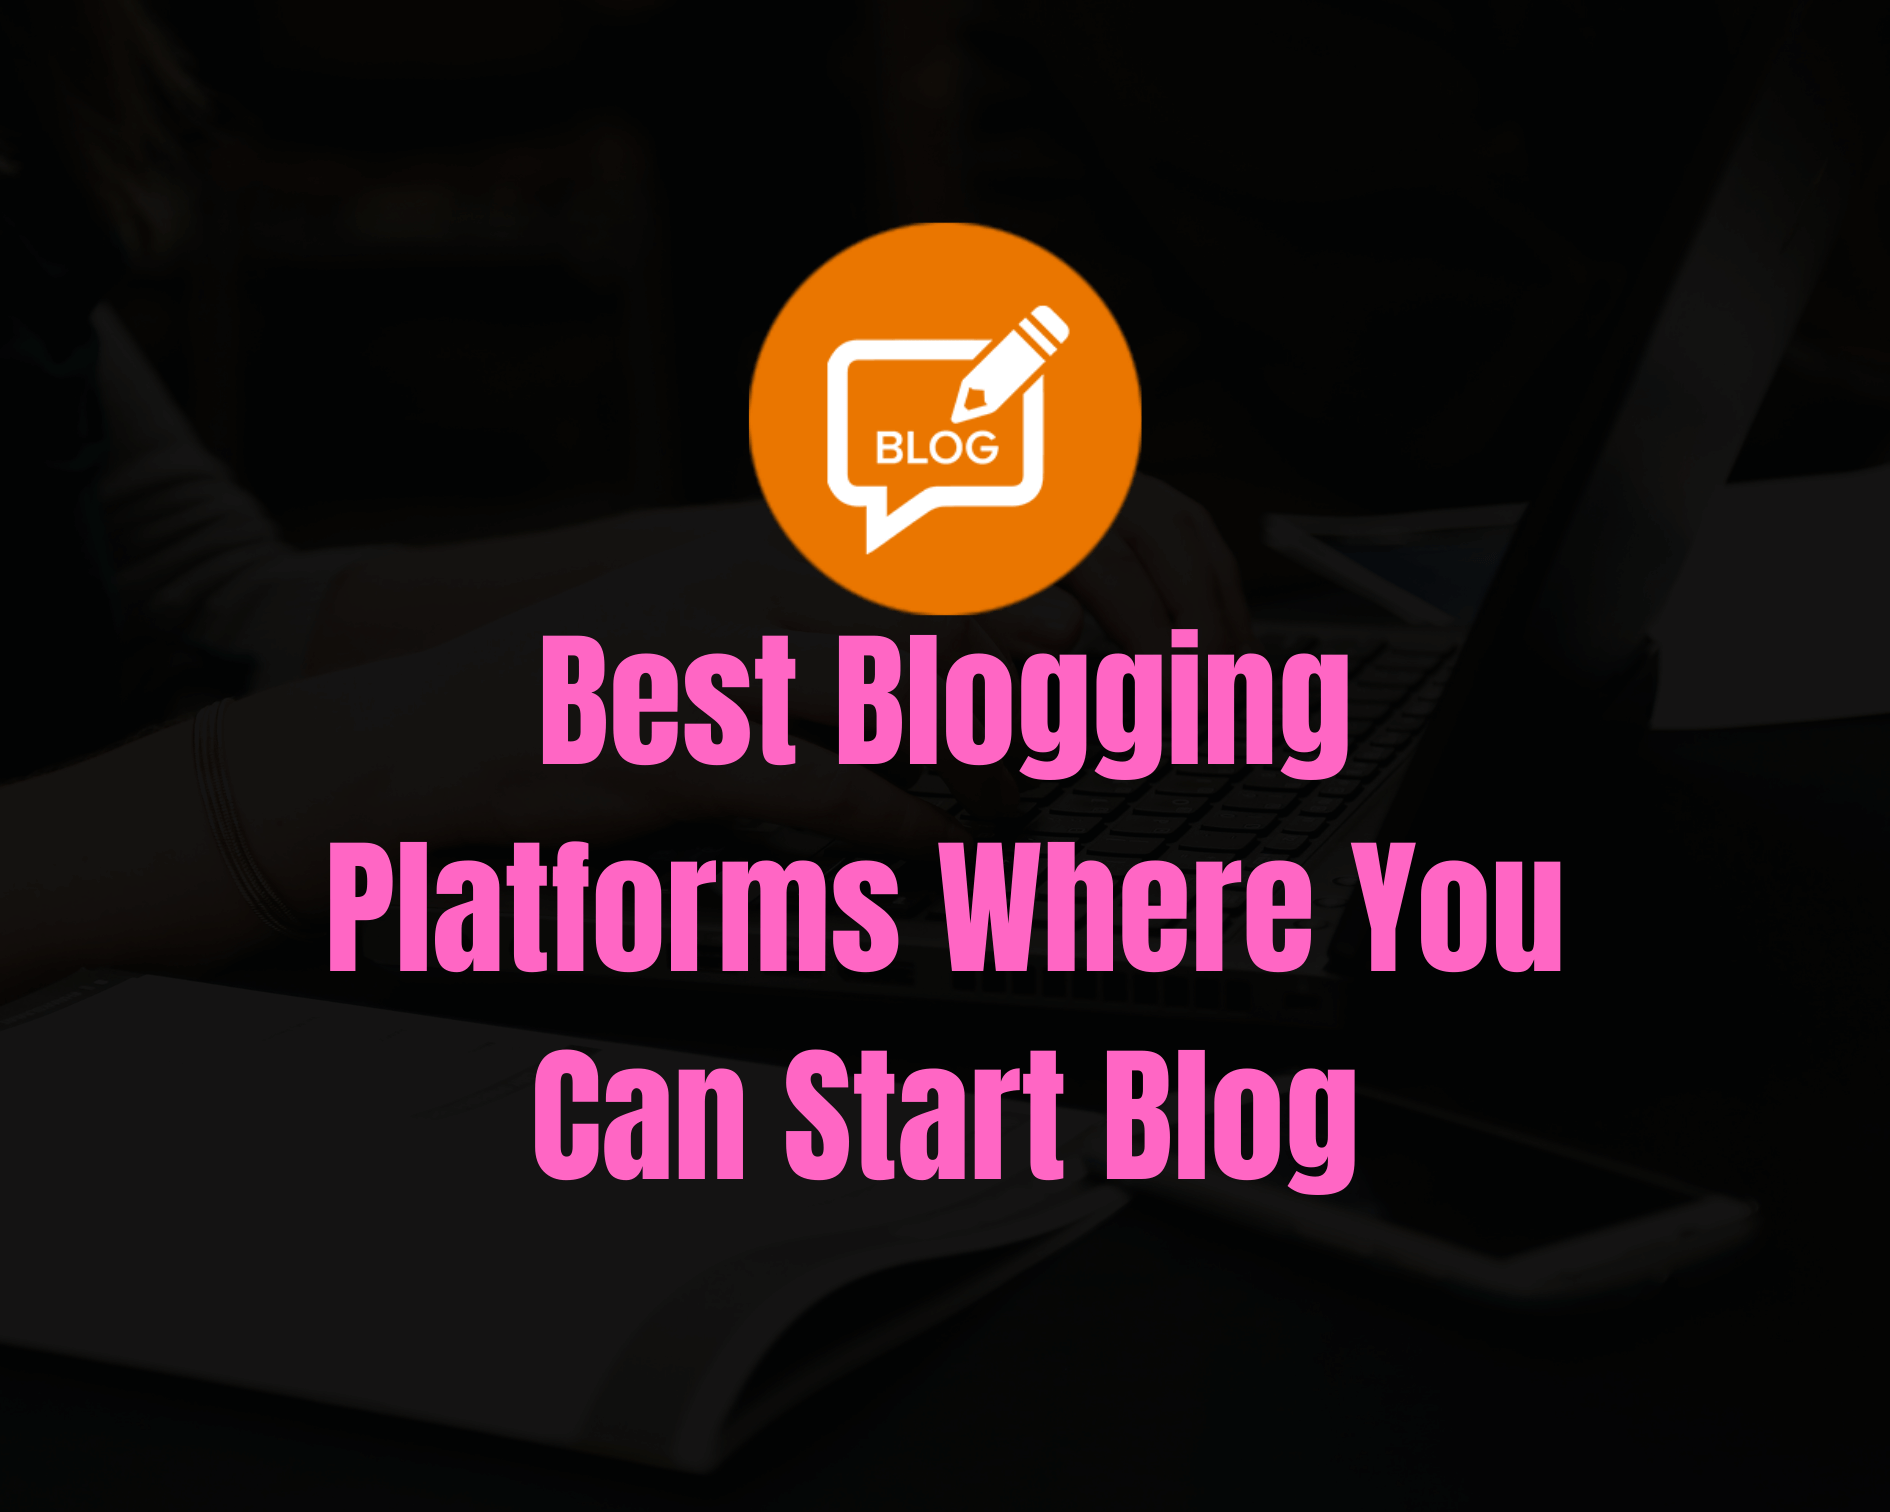 8 Best Blogging Platforms Where You Can Start Blog in 2021